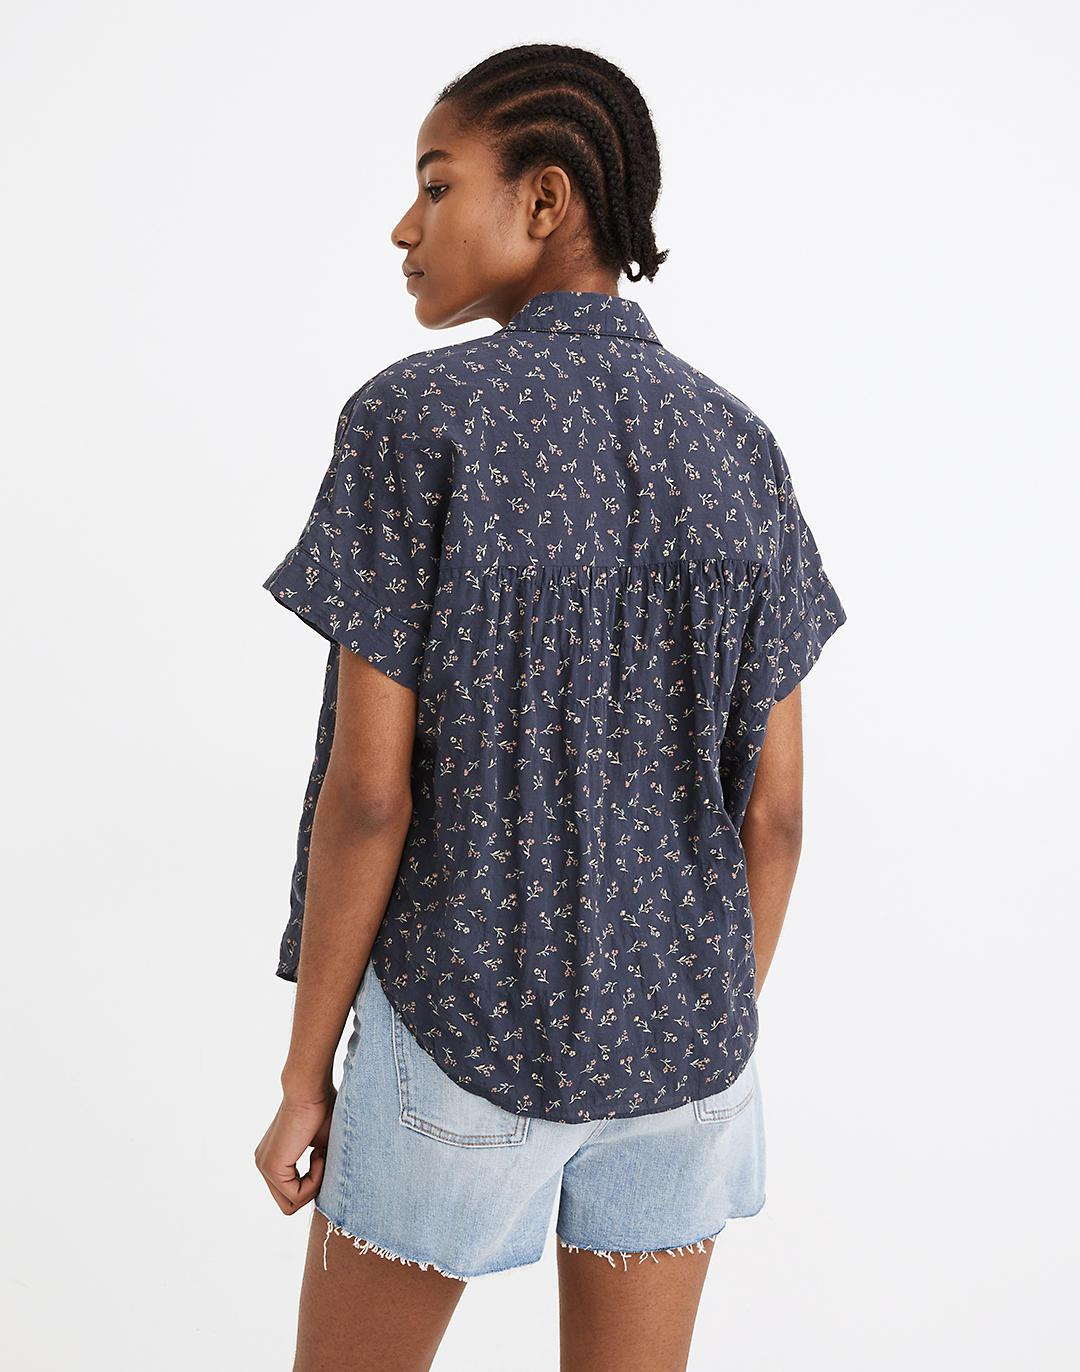 Hilltop Shirt in Adorable Ditsy 2